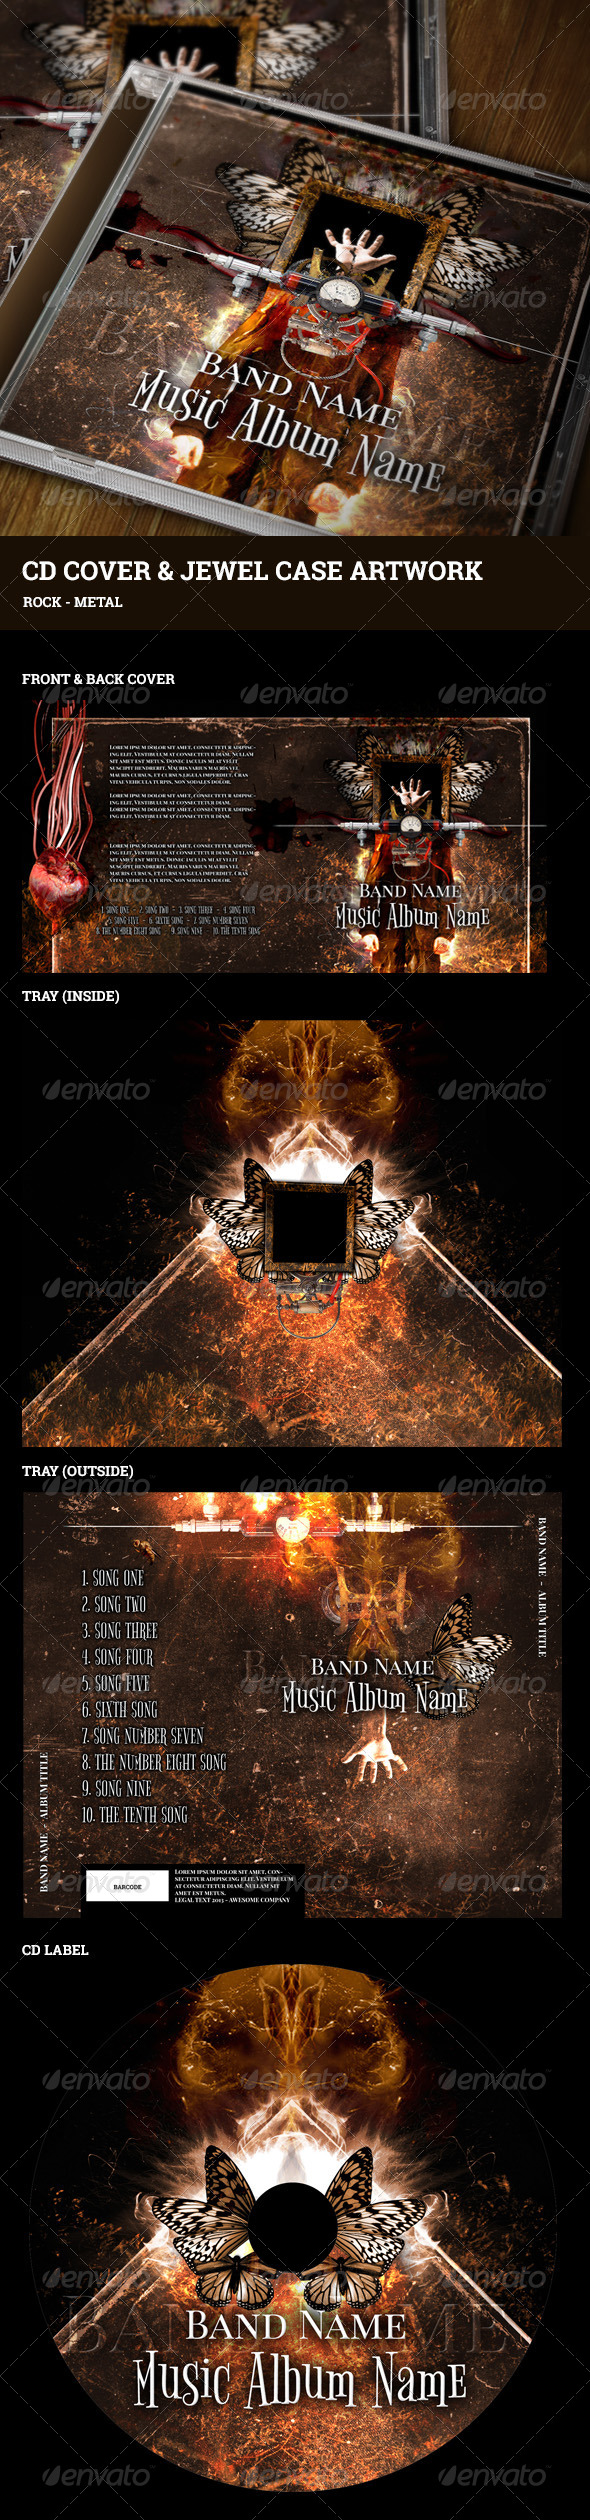 GraphicRiver CD Cover and Jewel Case Artwork 5273797